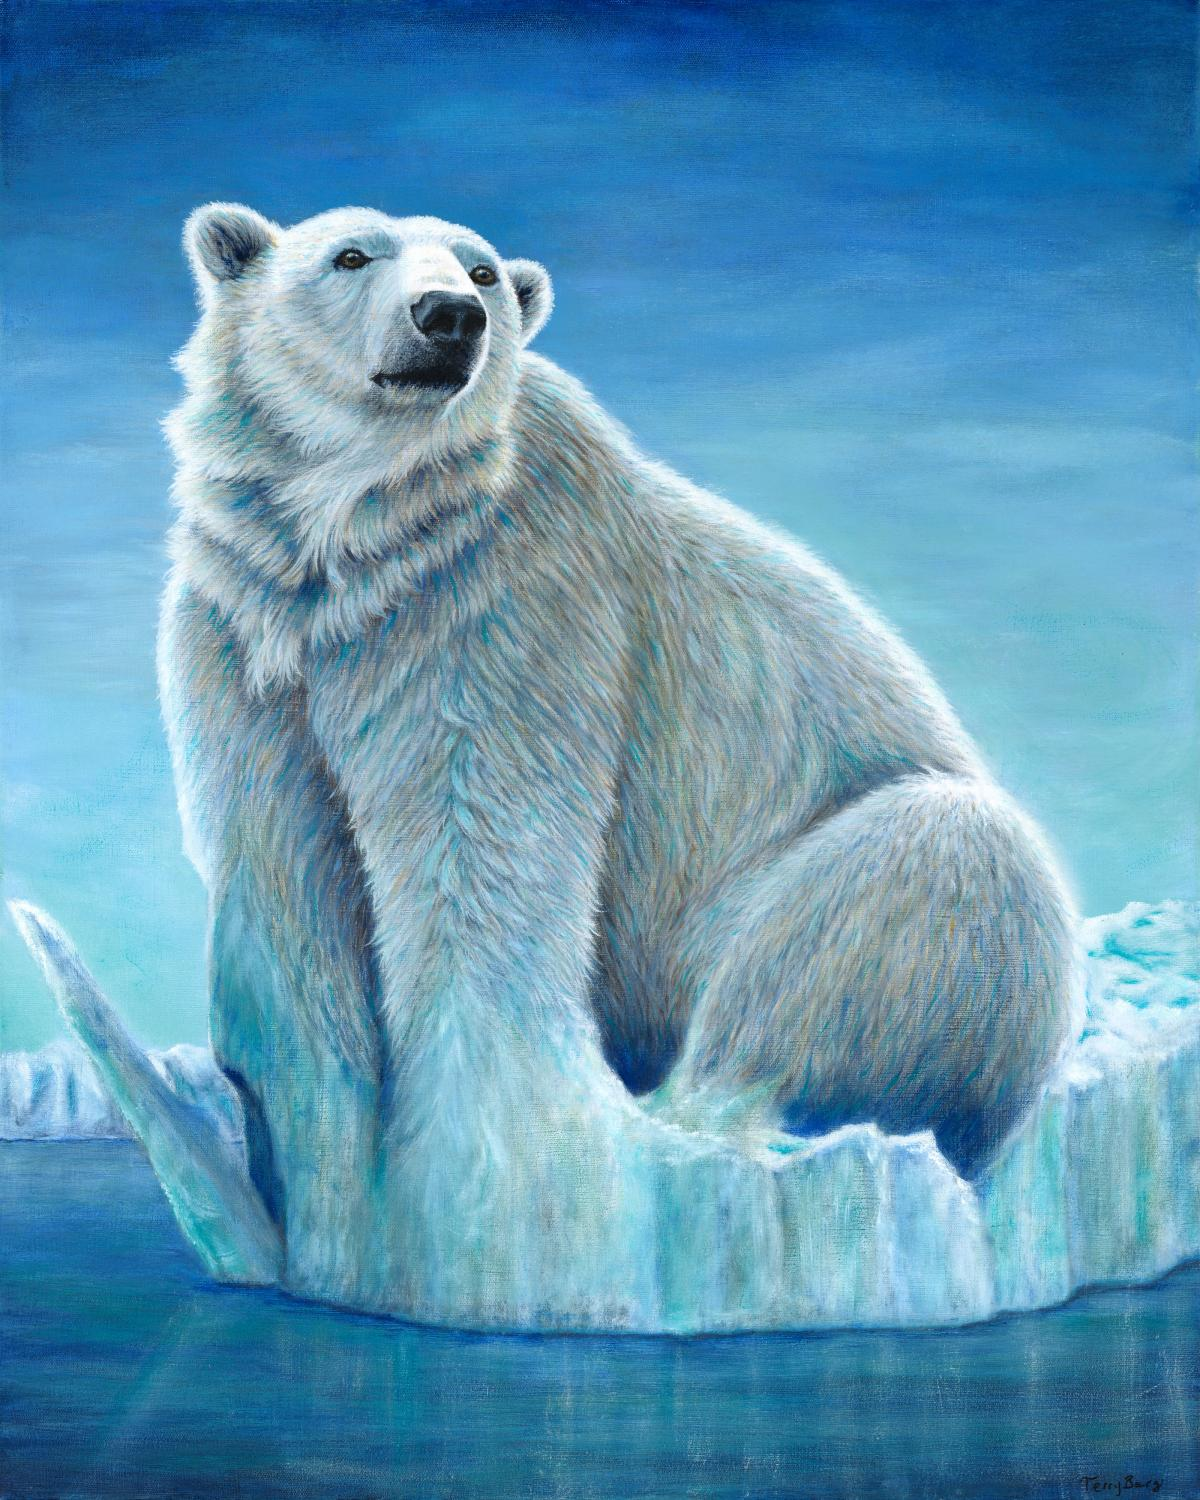 Polar Melt | Wallhanging by Terry Berg | Artists for Conservation 2021